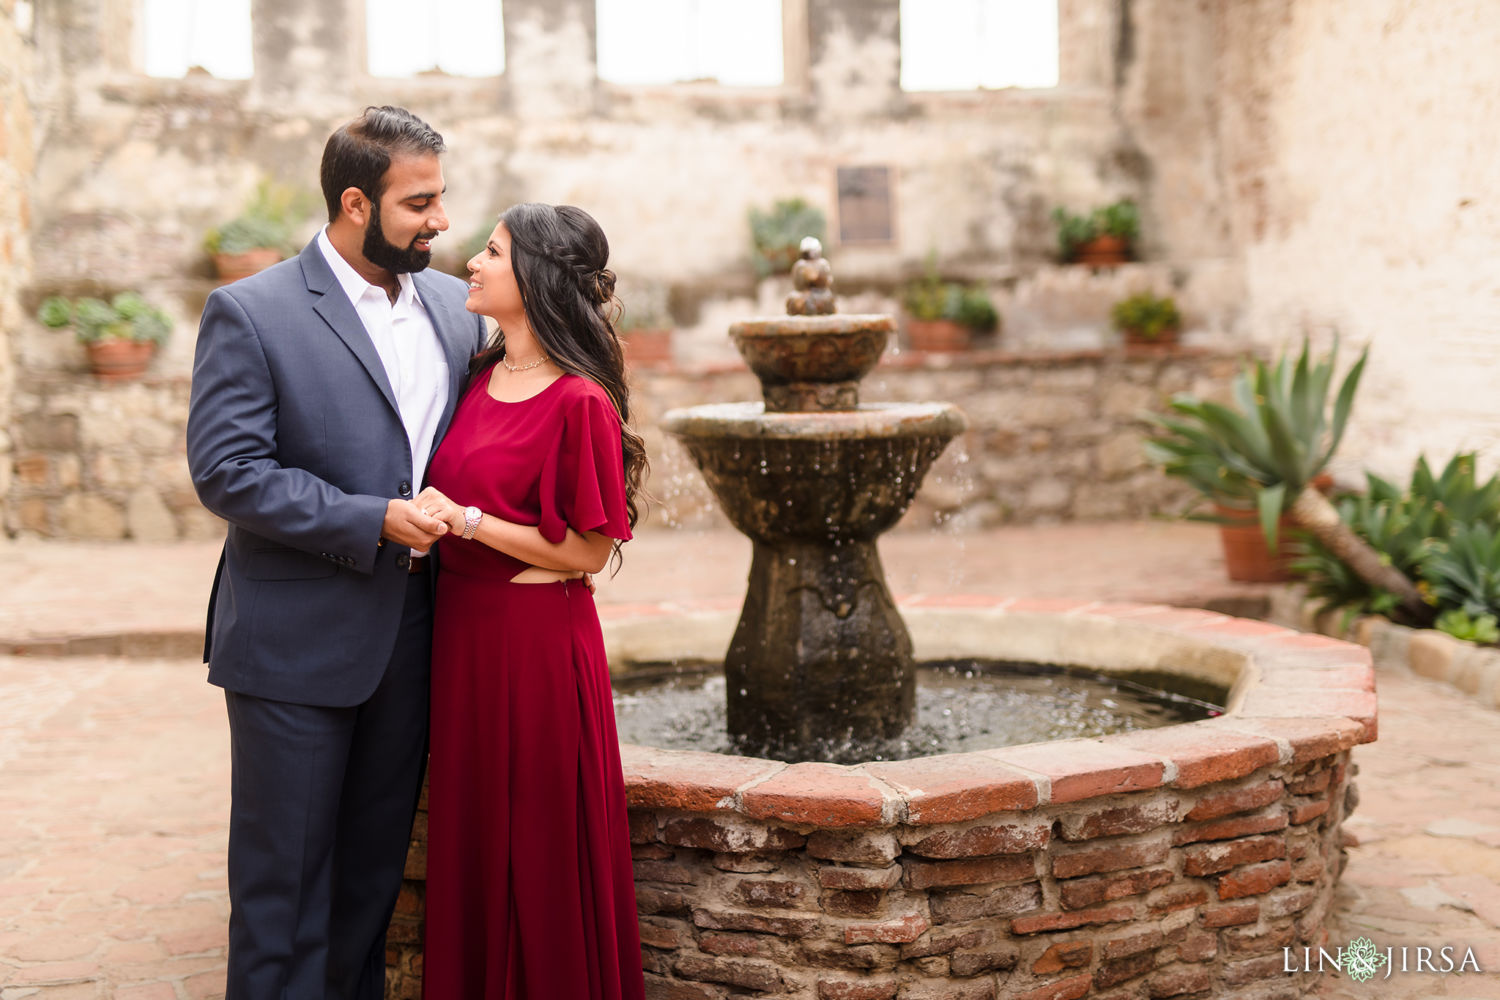 Mission San Juan Capistrano Thomas R. Riley Wilderness Park Engagement Session 03